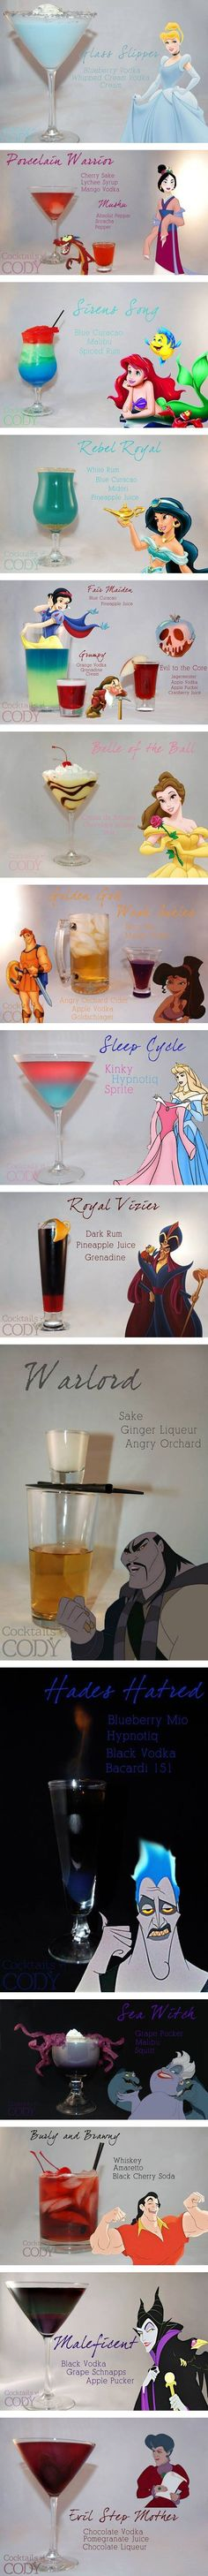 Disney Cocktails disney cocktail recipe recipes ingredients instructions drink…